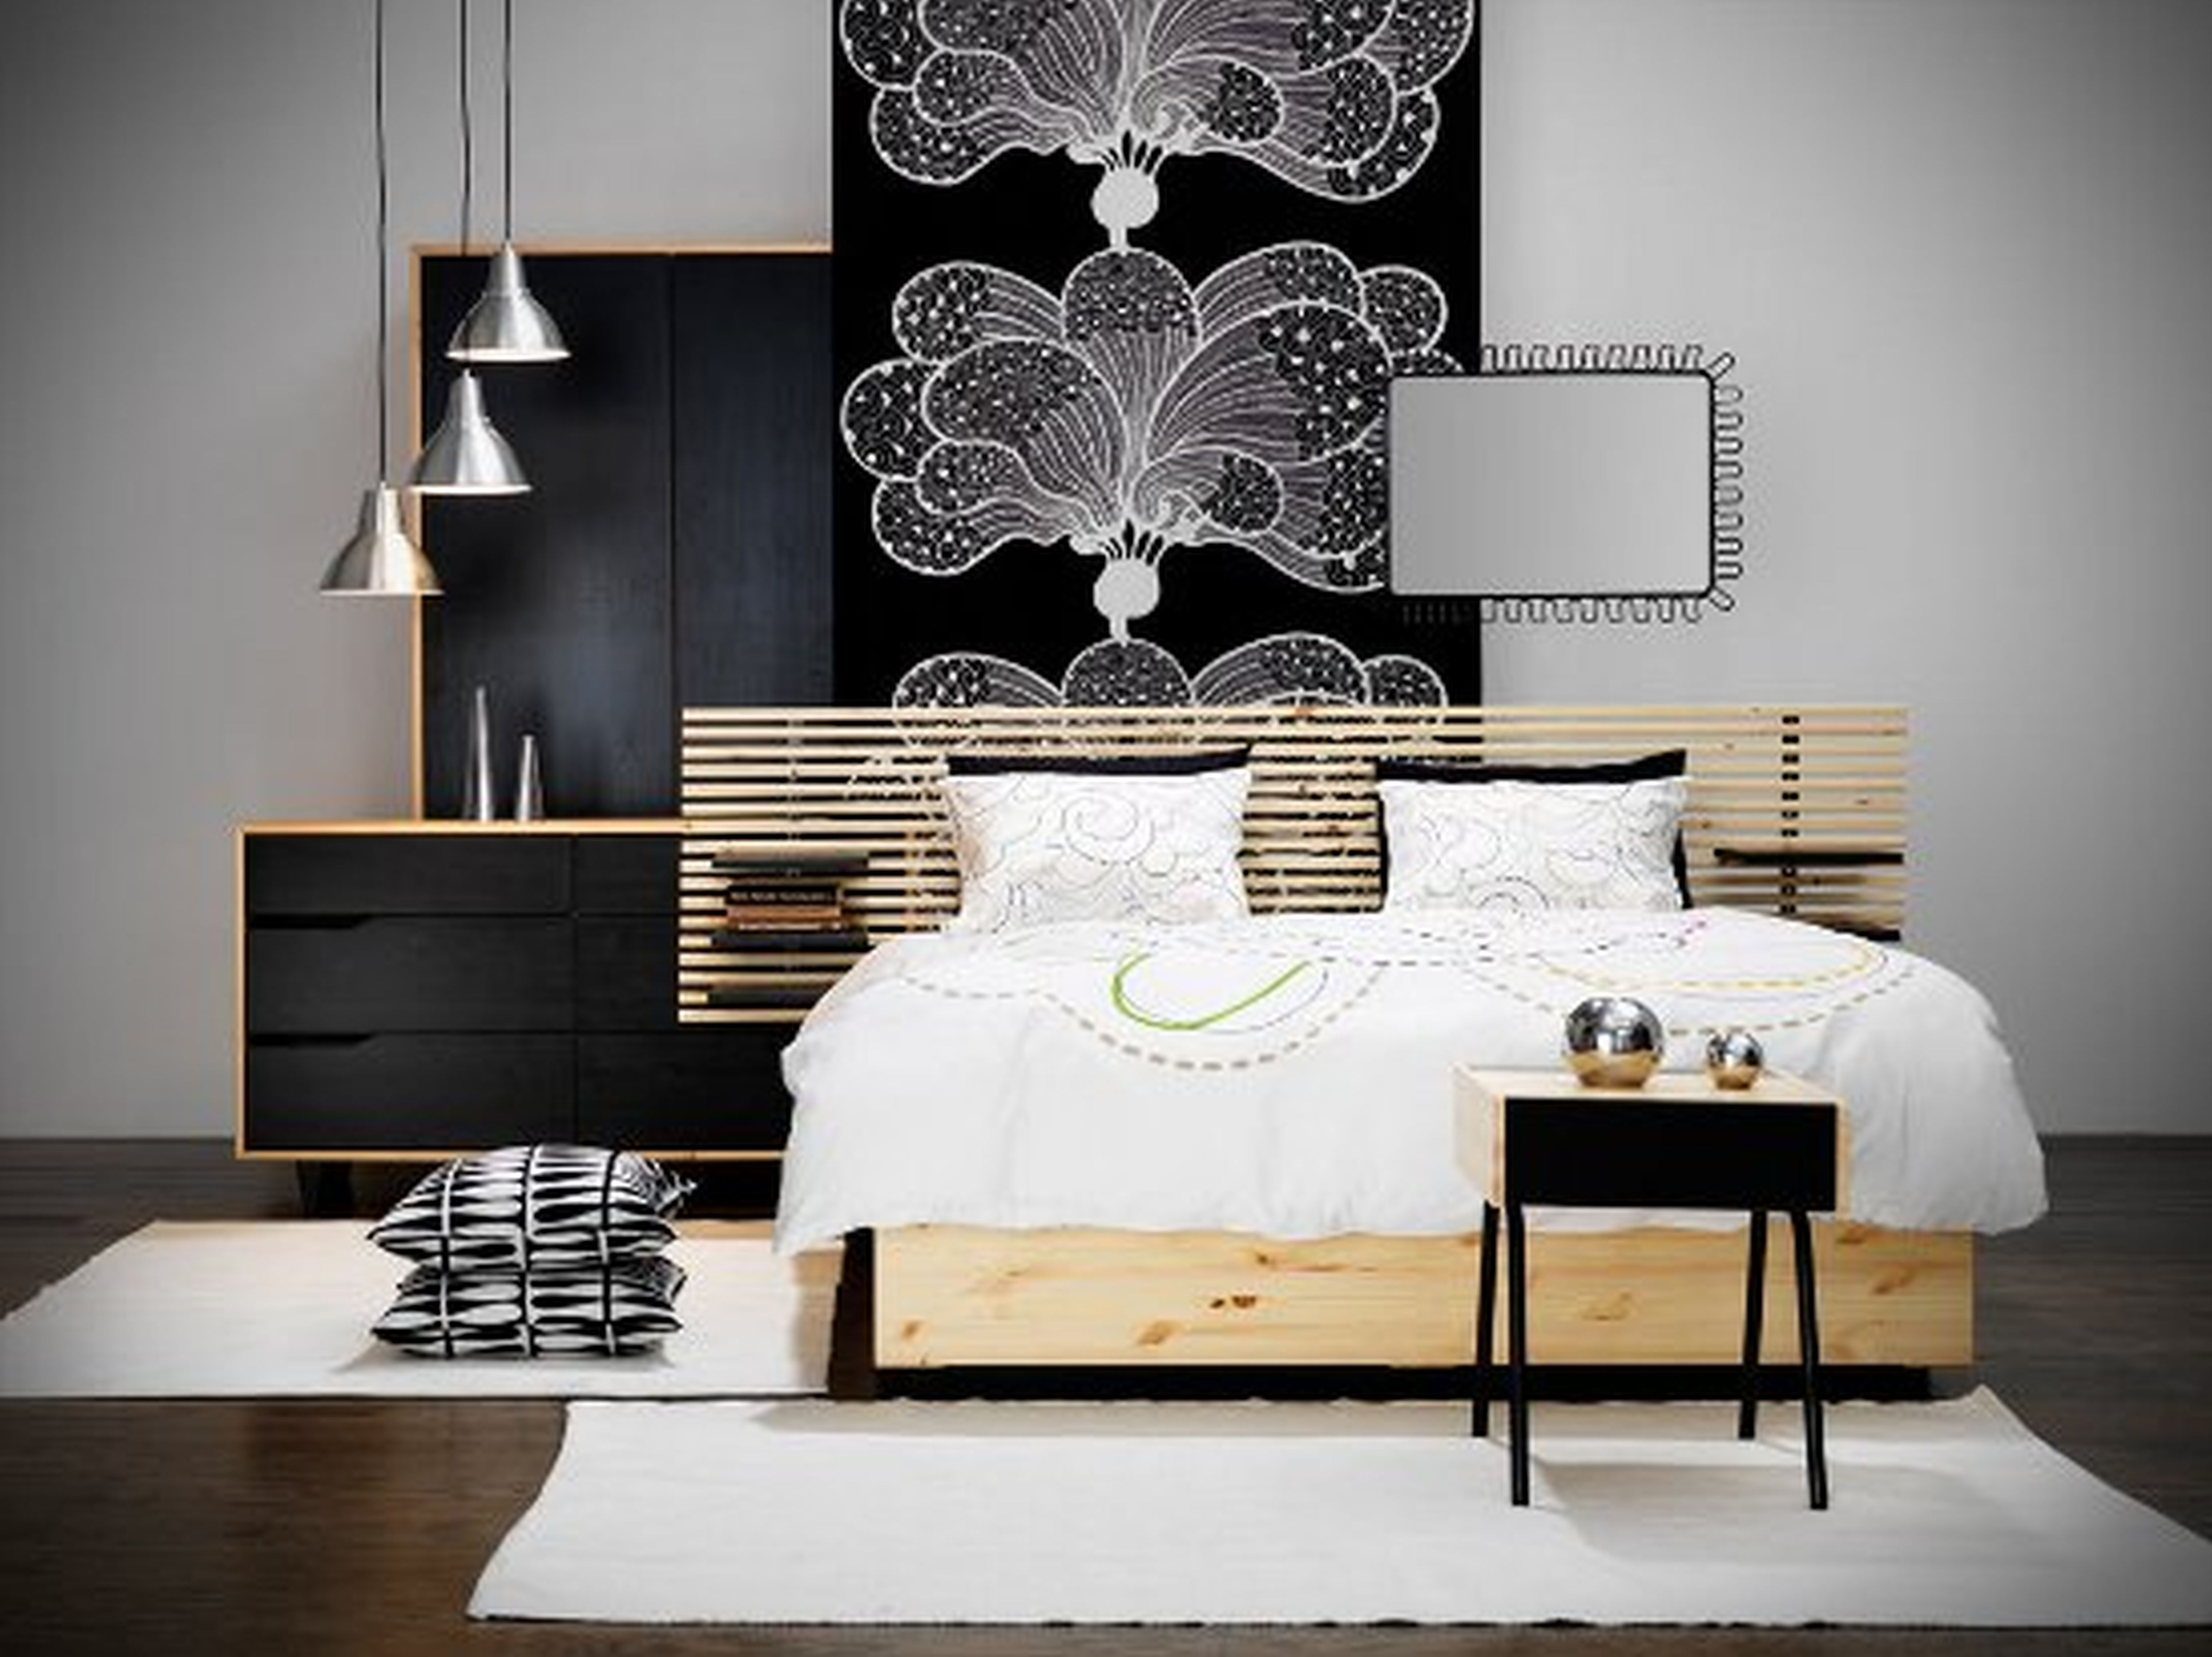 Charming Bedroom Furniture Design With Wood Wall Cover Along Exciting For Contemporary Decor Wooden Bed And